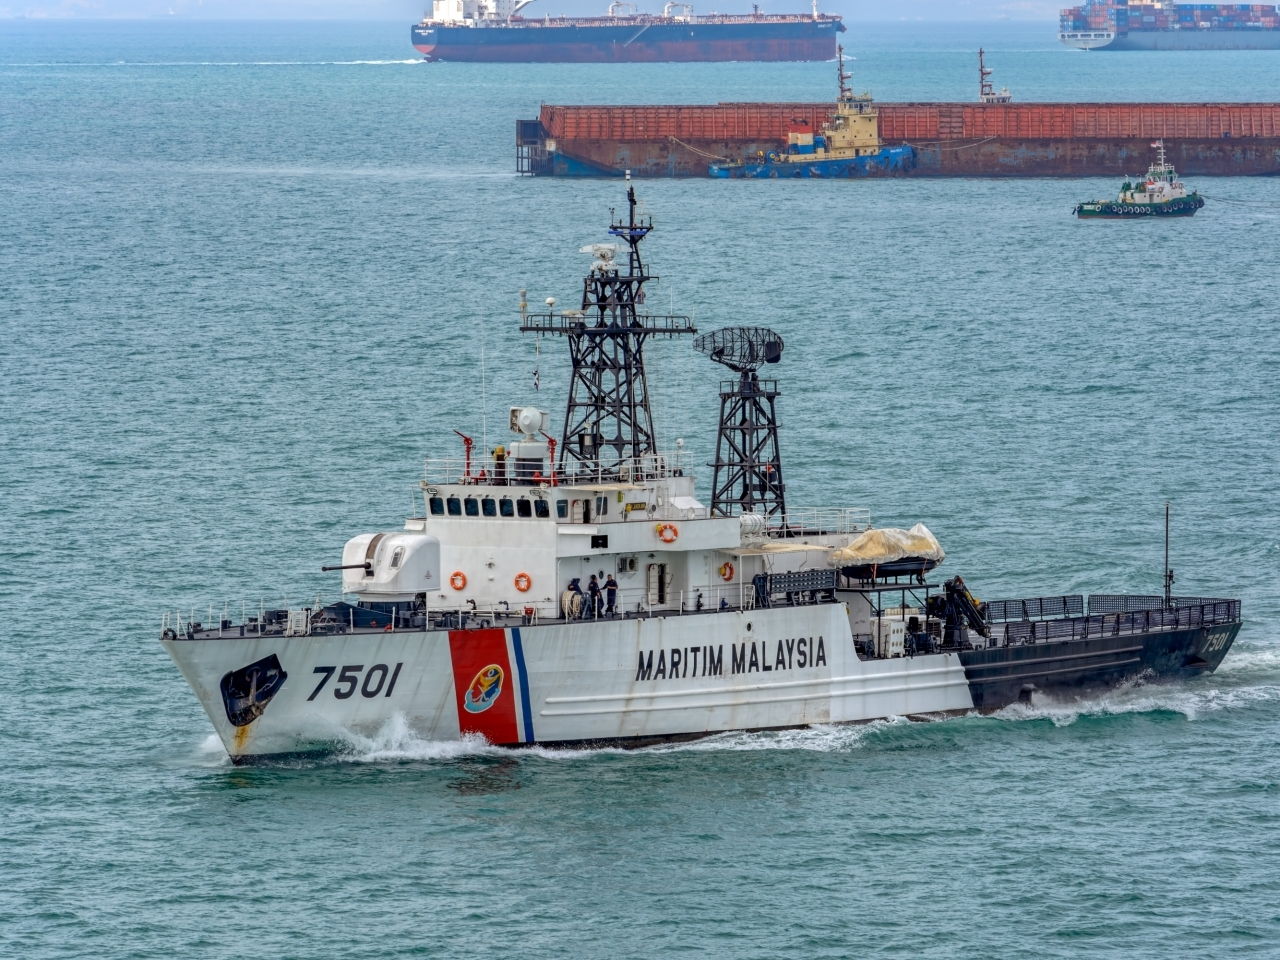 malaysias maritime detains 60 chinese nationals 6 vessels for trespassing